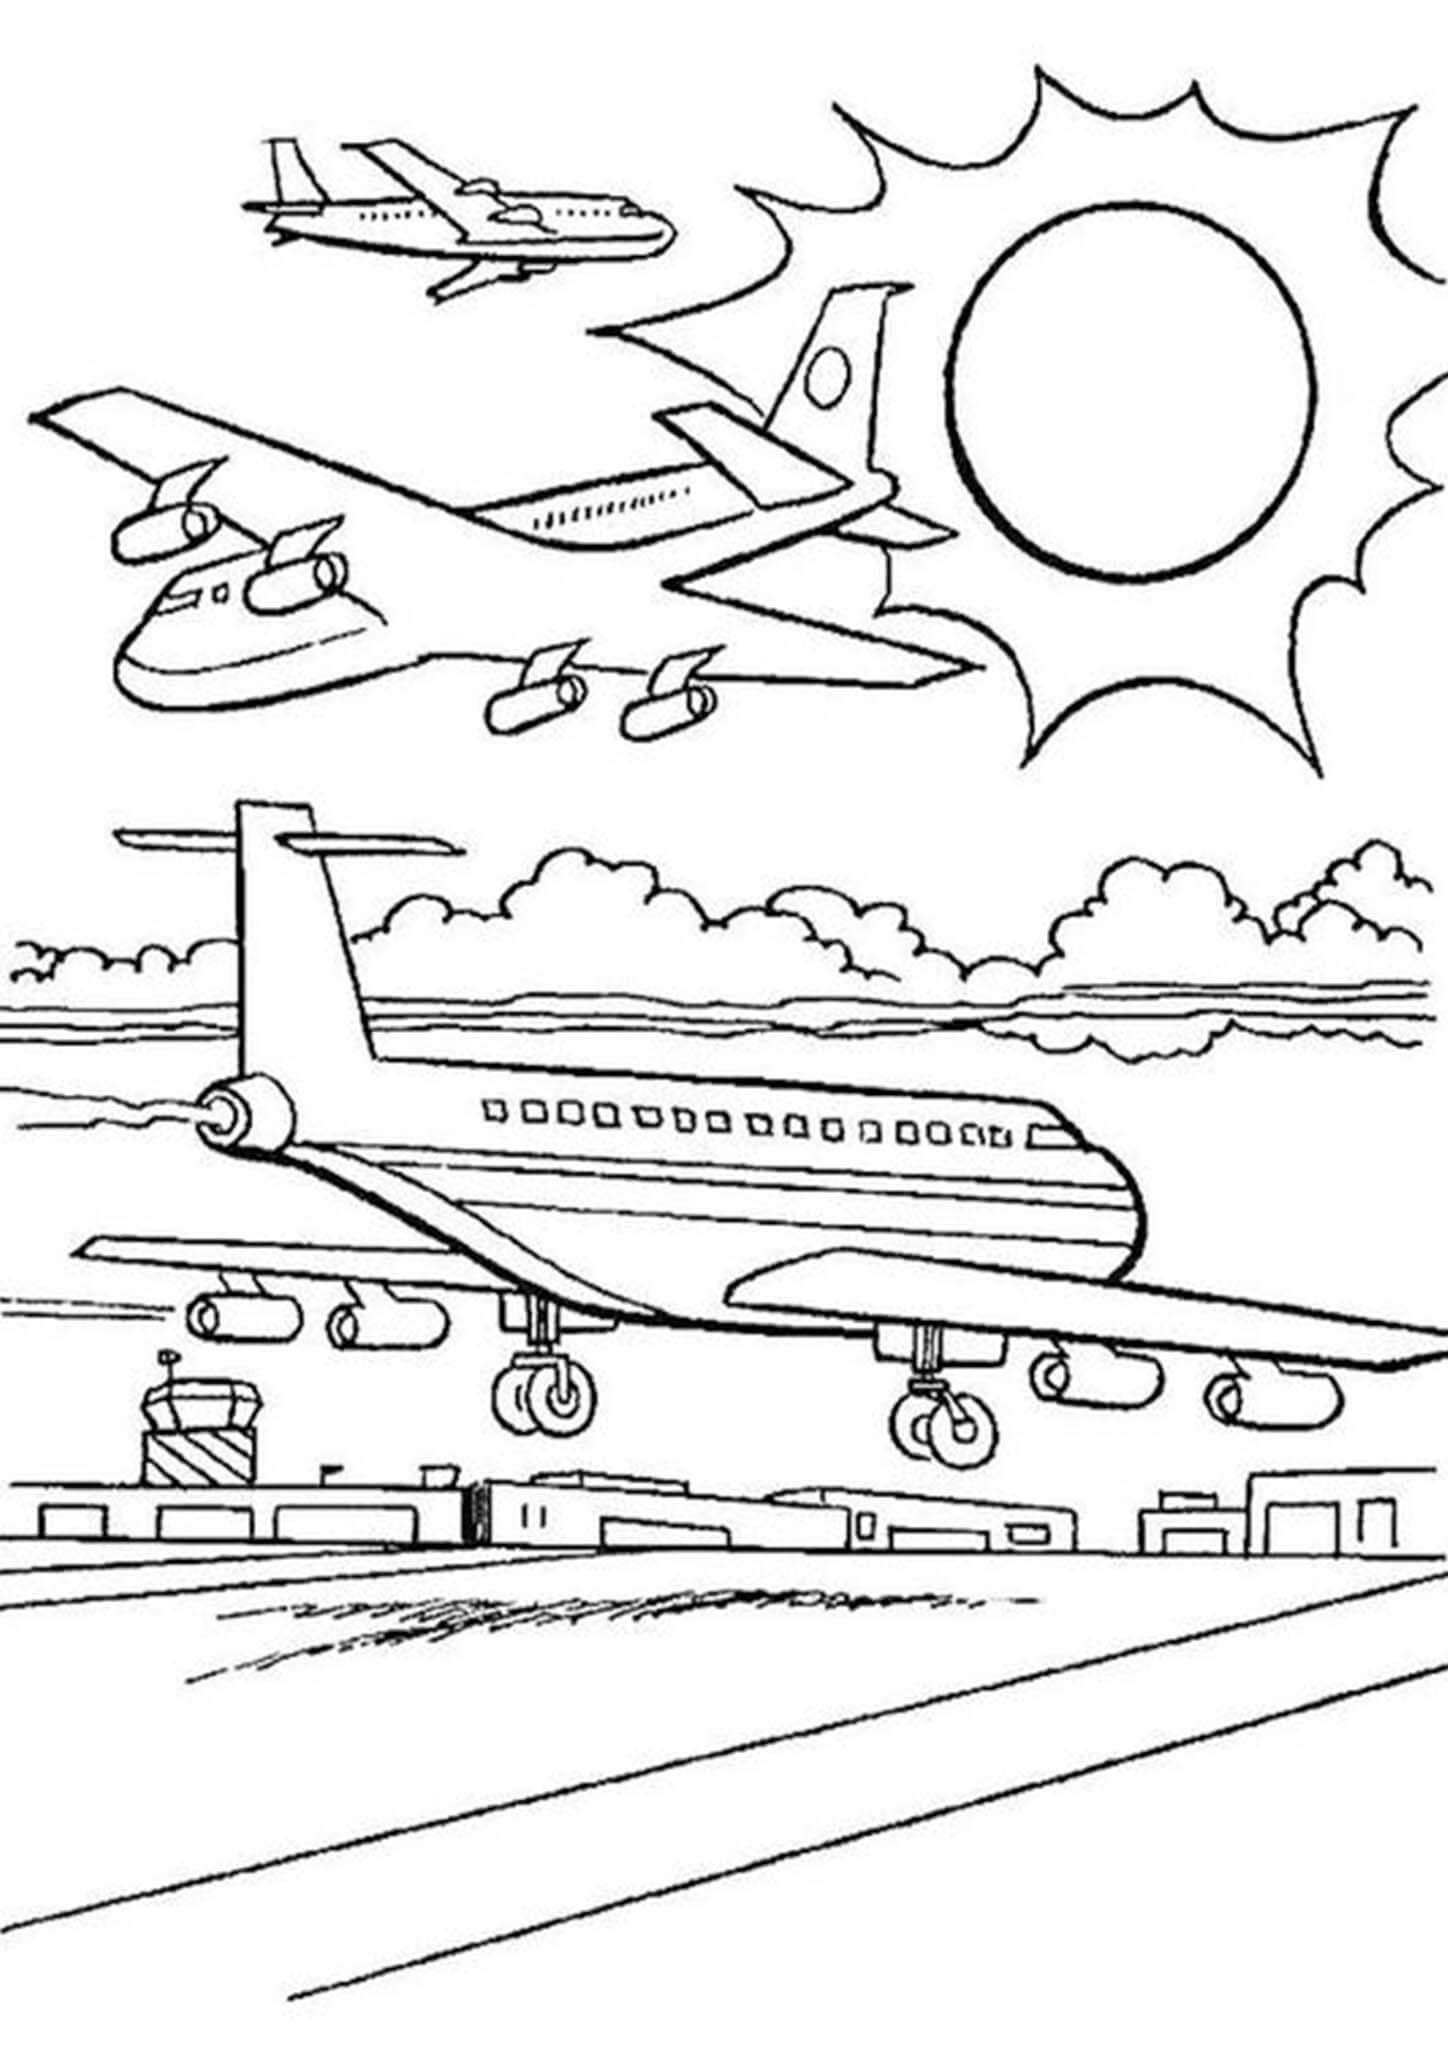 Free Easy To Print Airplane Coloring Pages Airplane Coloring Pages Coloring Pages For Kids Kids Coloring Books